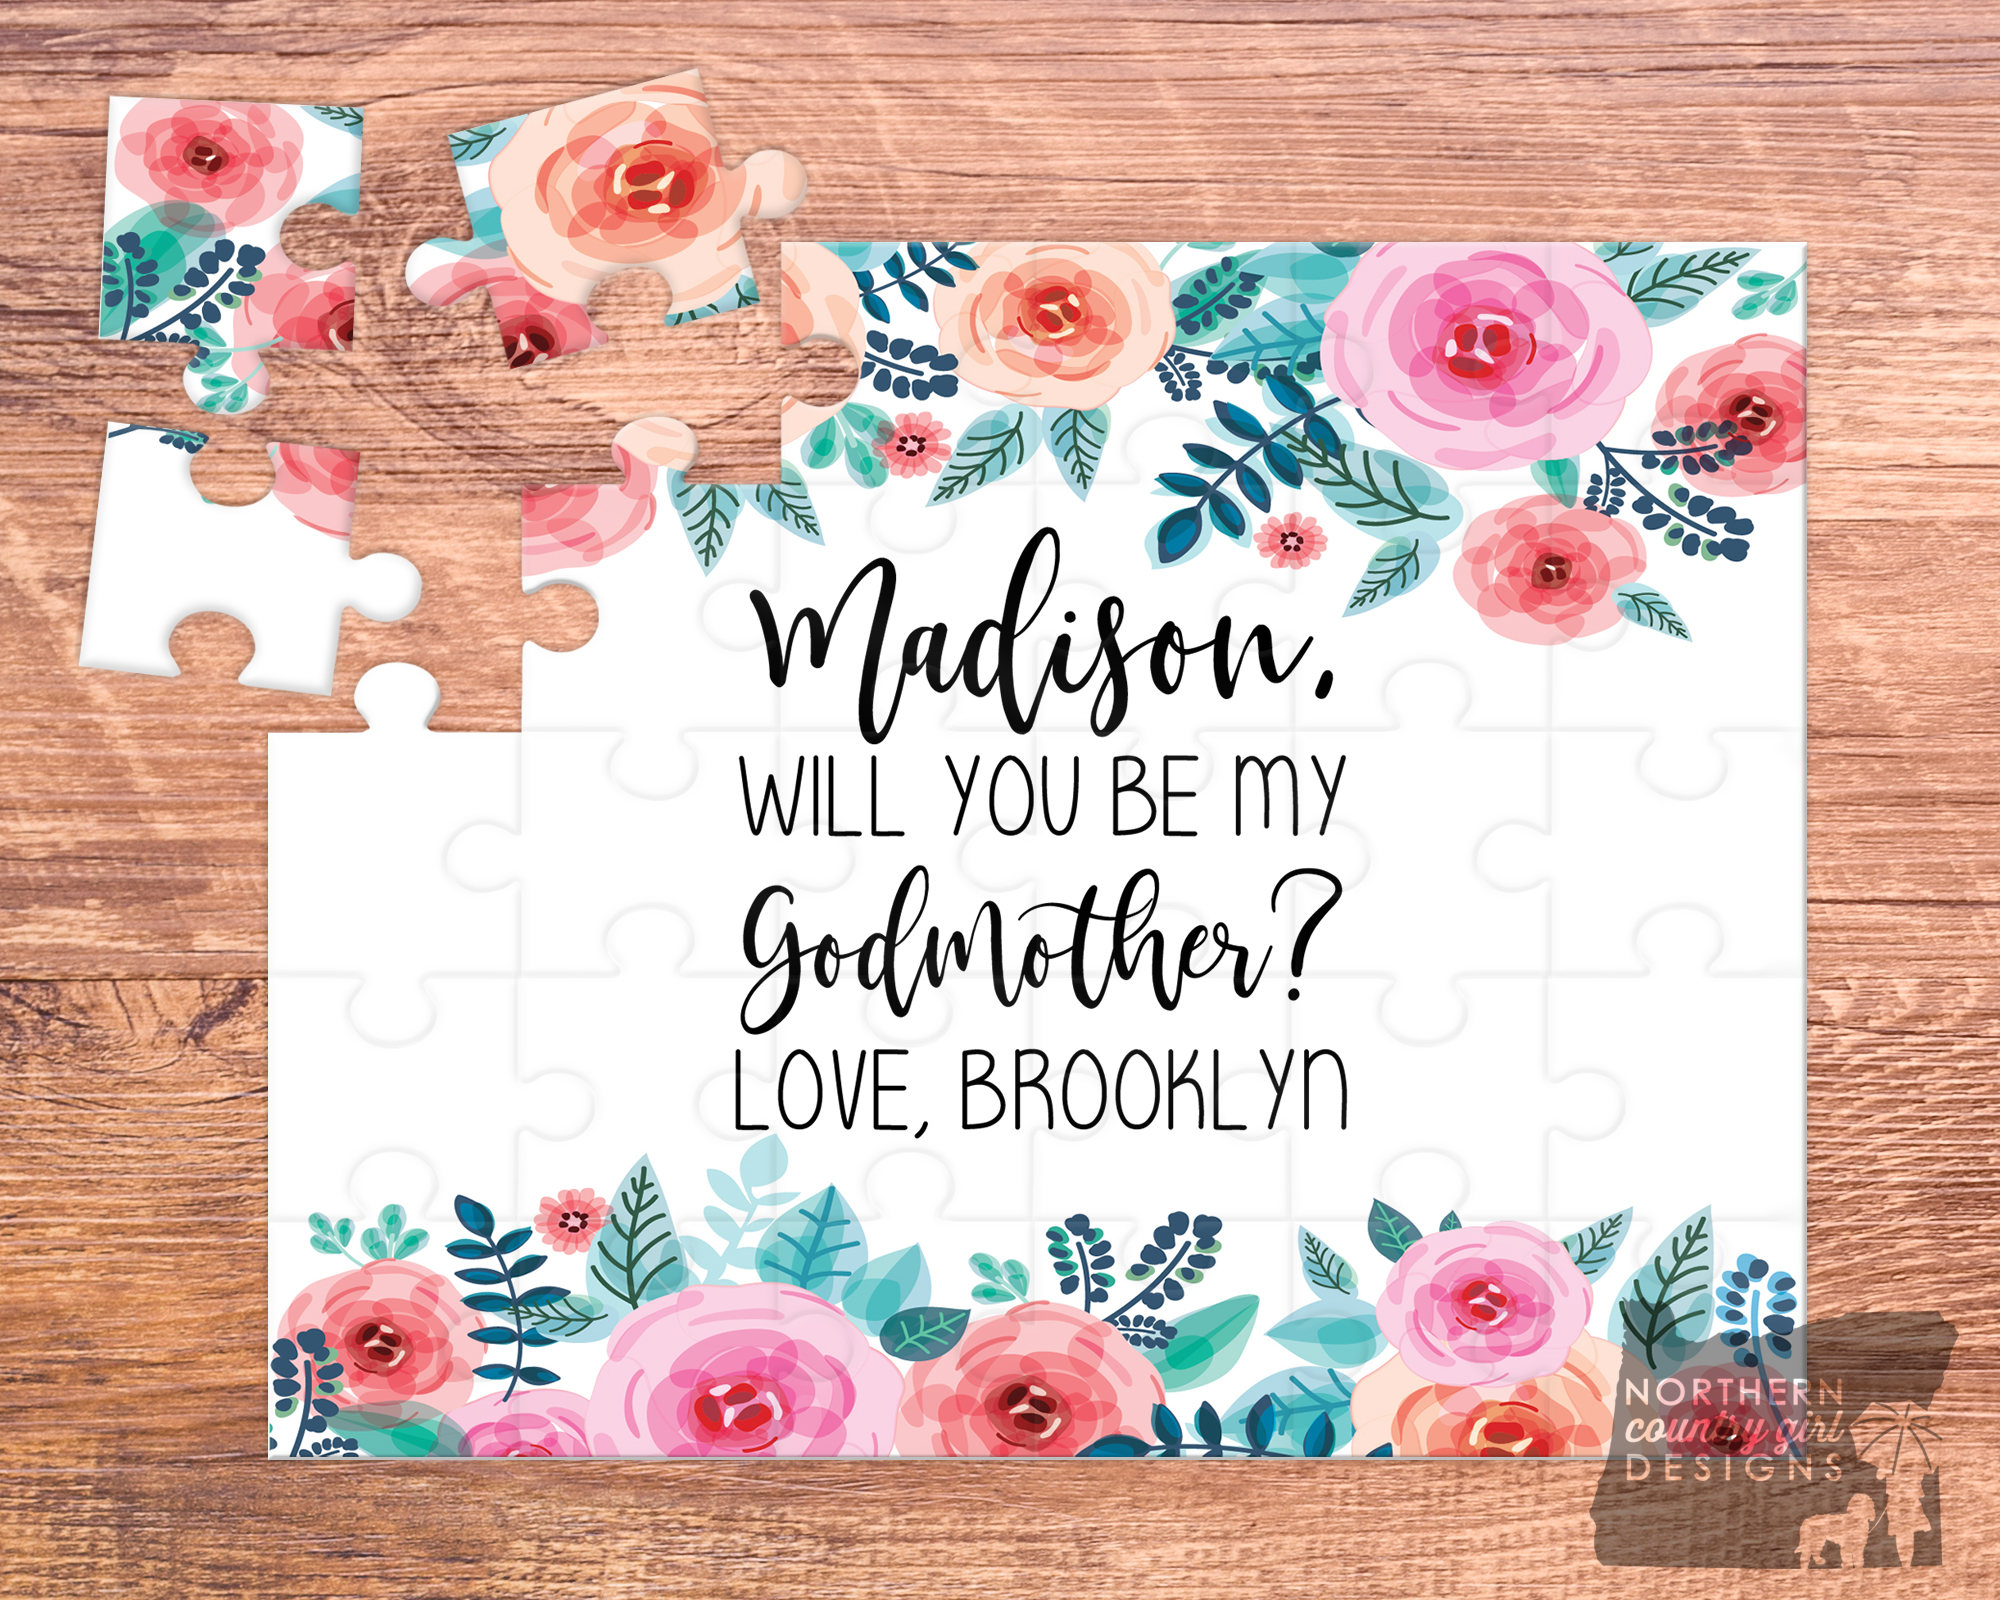 Godmother puzzle baptism be my godmother godmother puzzle godmother puzzle baptism be my godmother godmother puzzle asking godmother godmother proposal godmother gift godmother card m4hsunfo